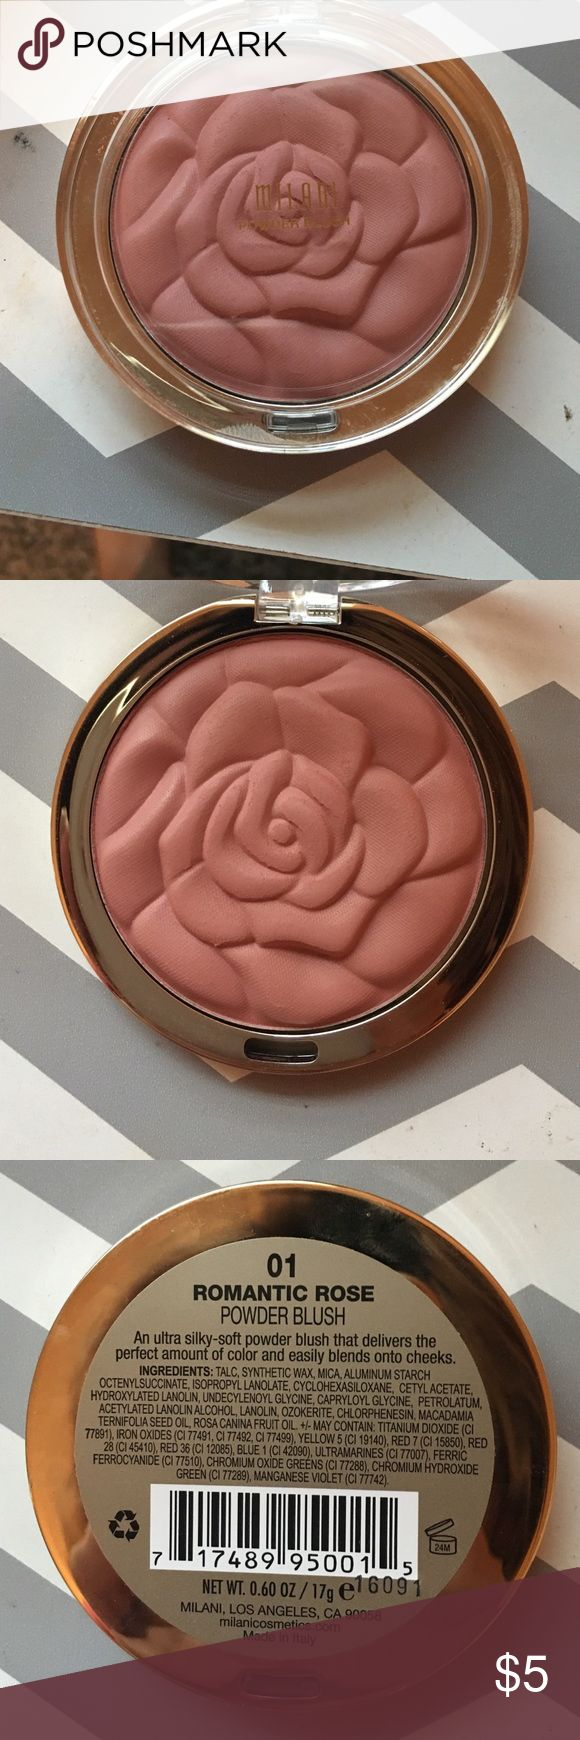 Milani Blush Milani blush in the color romantic rose. Never used just swatched. Milani Makeup Blush